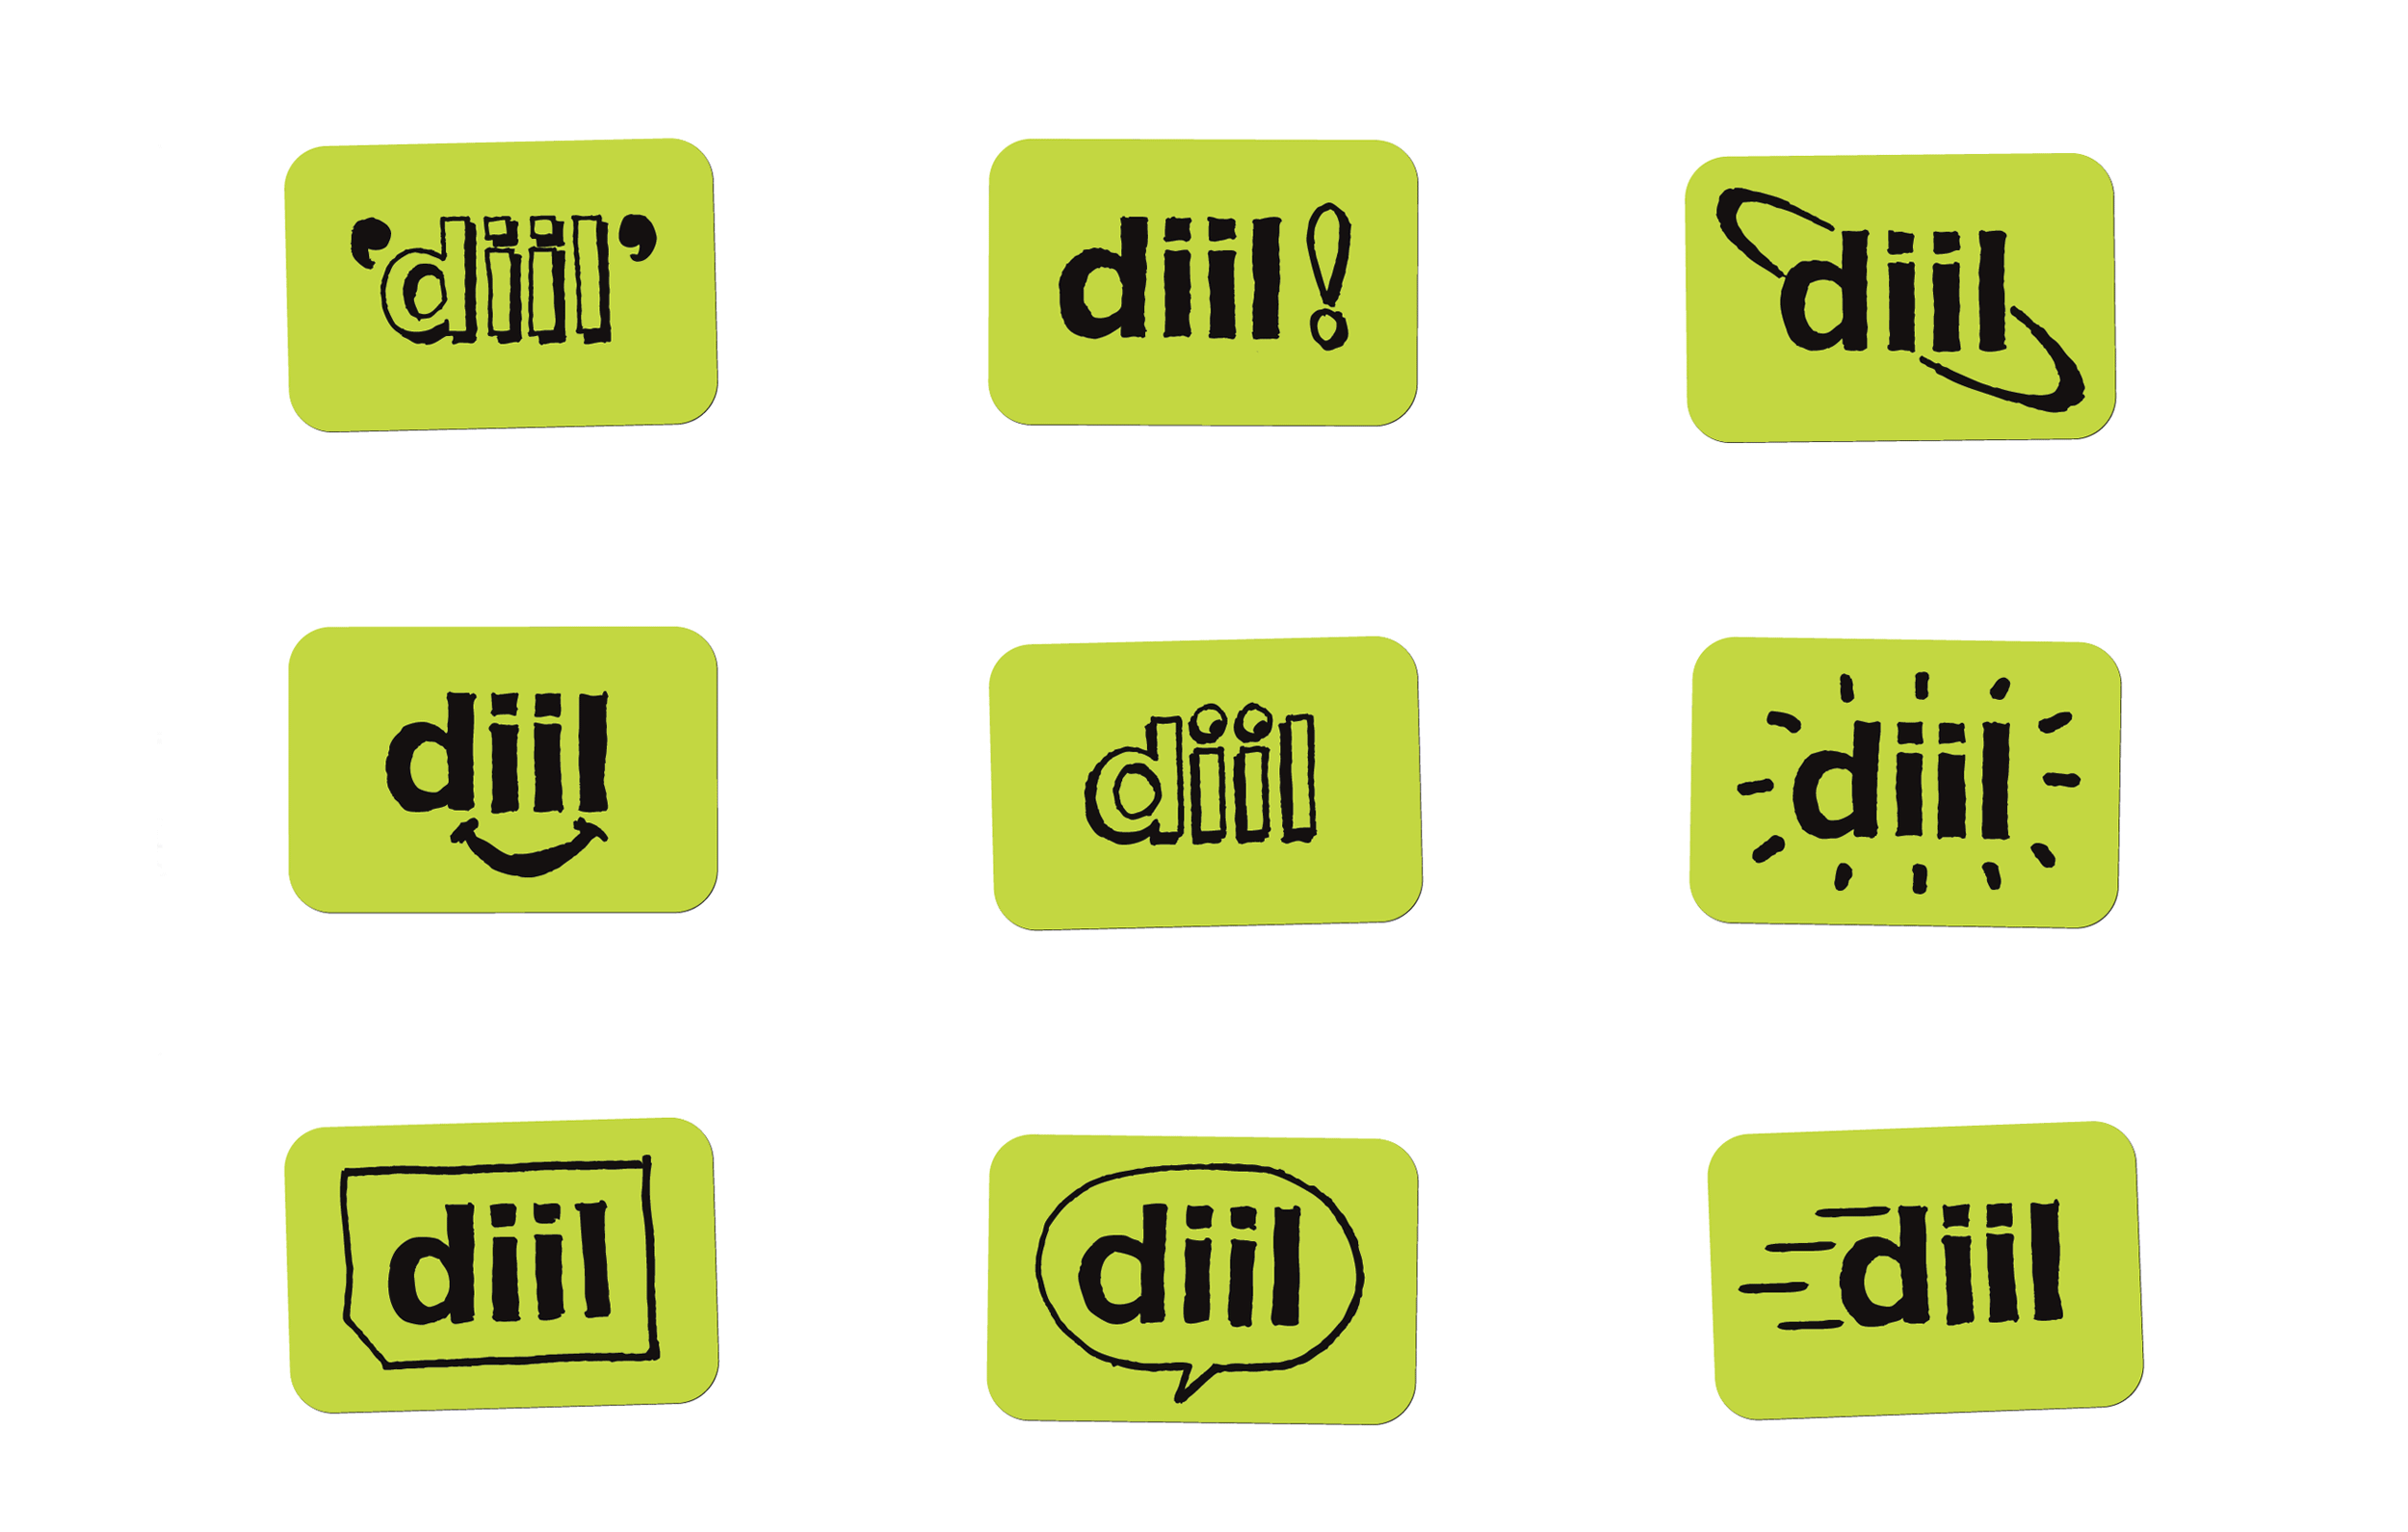 Diil-by-Ian-Whalley.png